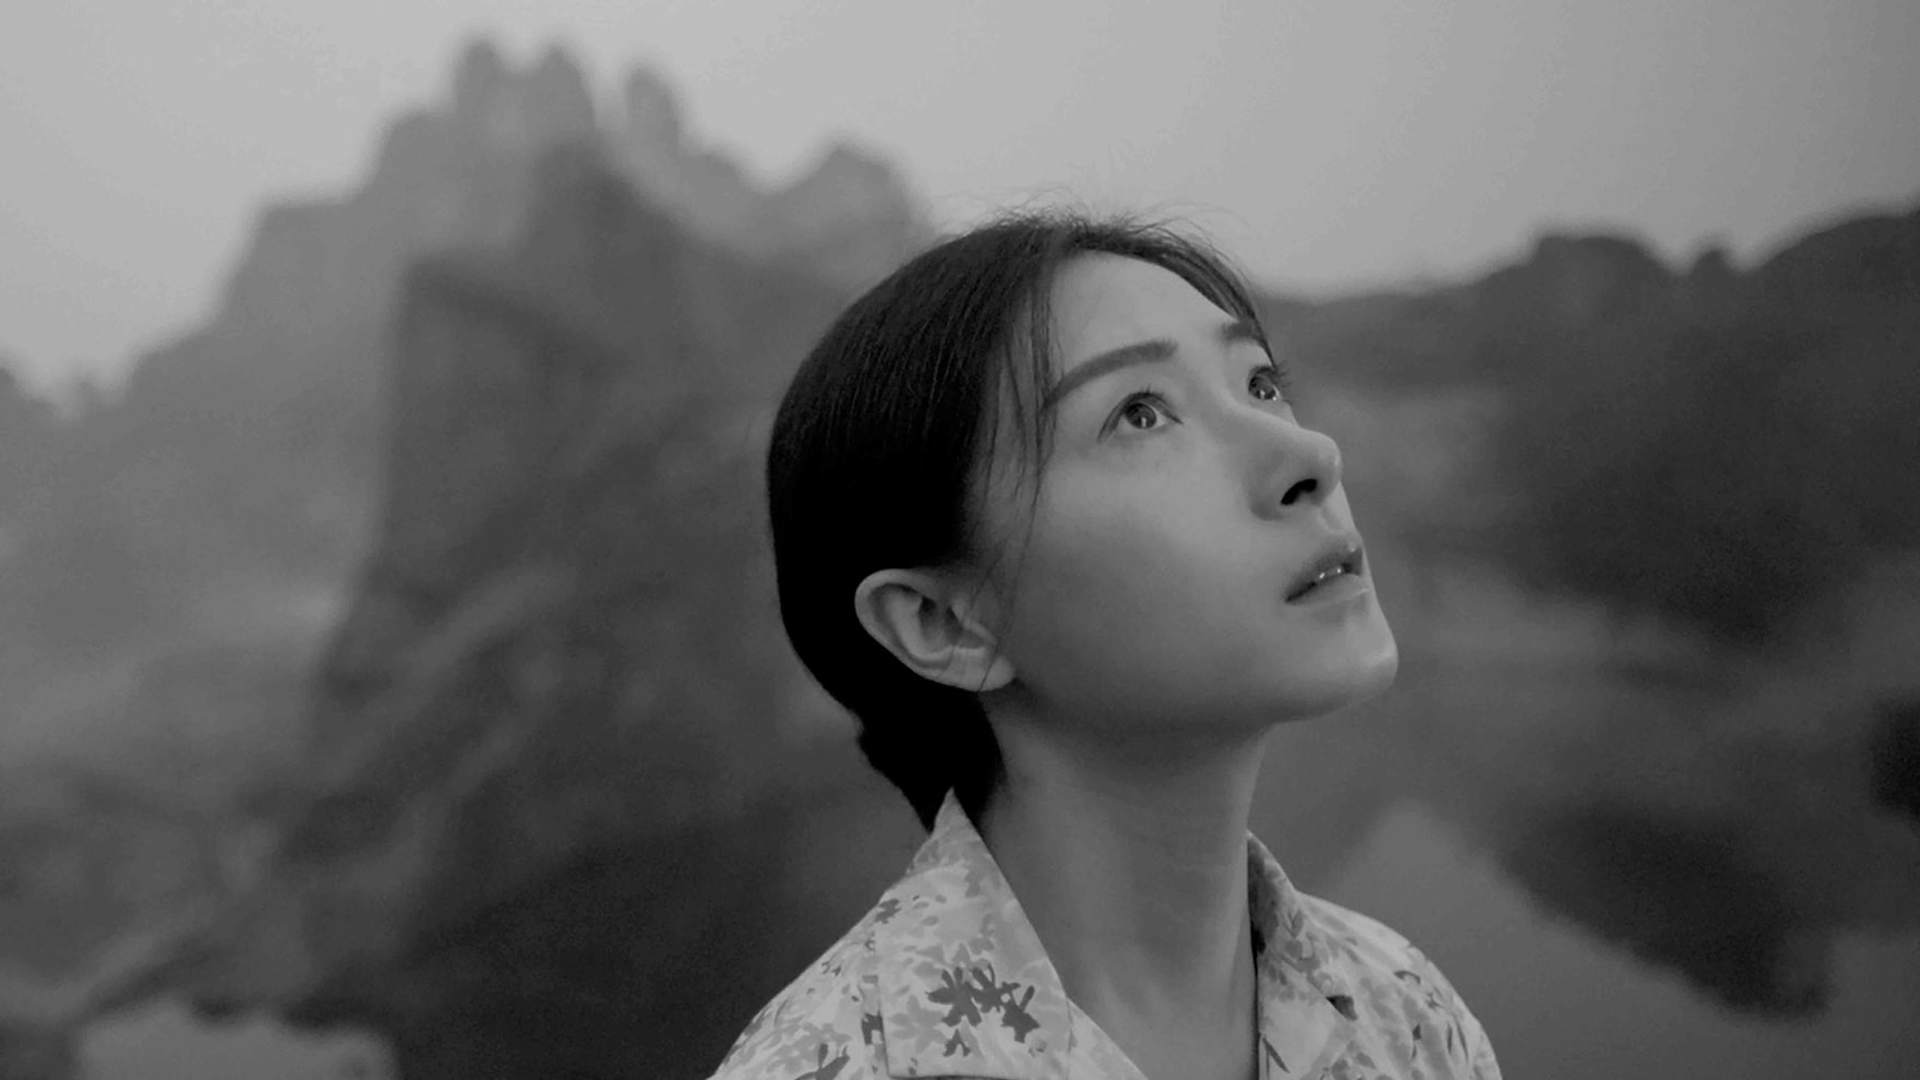 A snapshot from Yang Fudong's short film based on Chinese mythology, and the virtues of perseverance and will power.